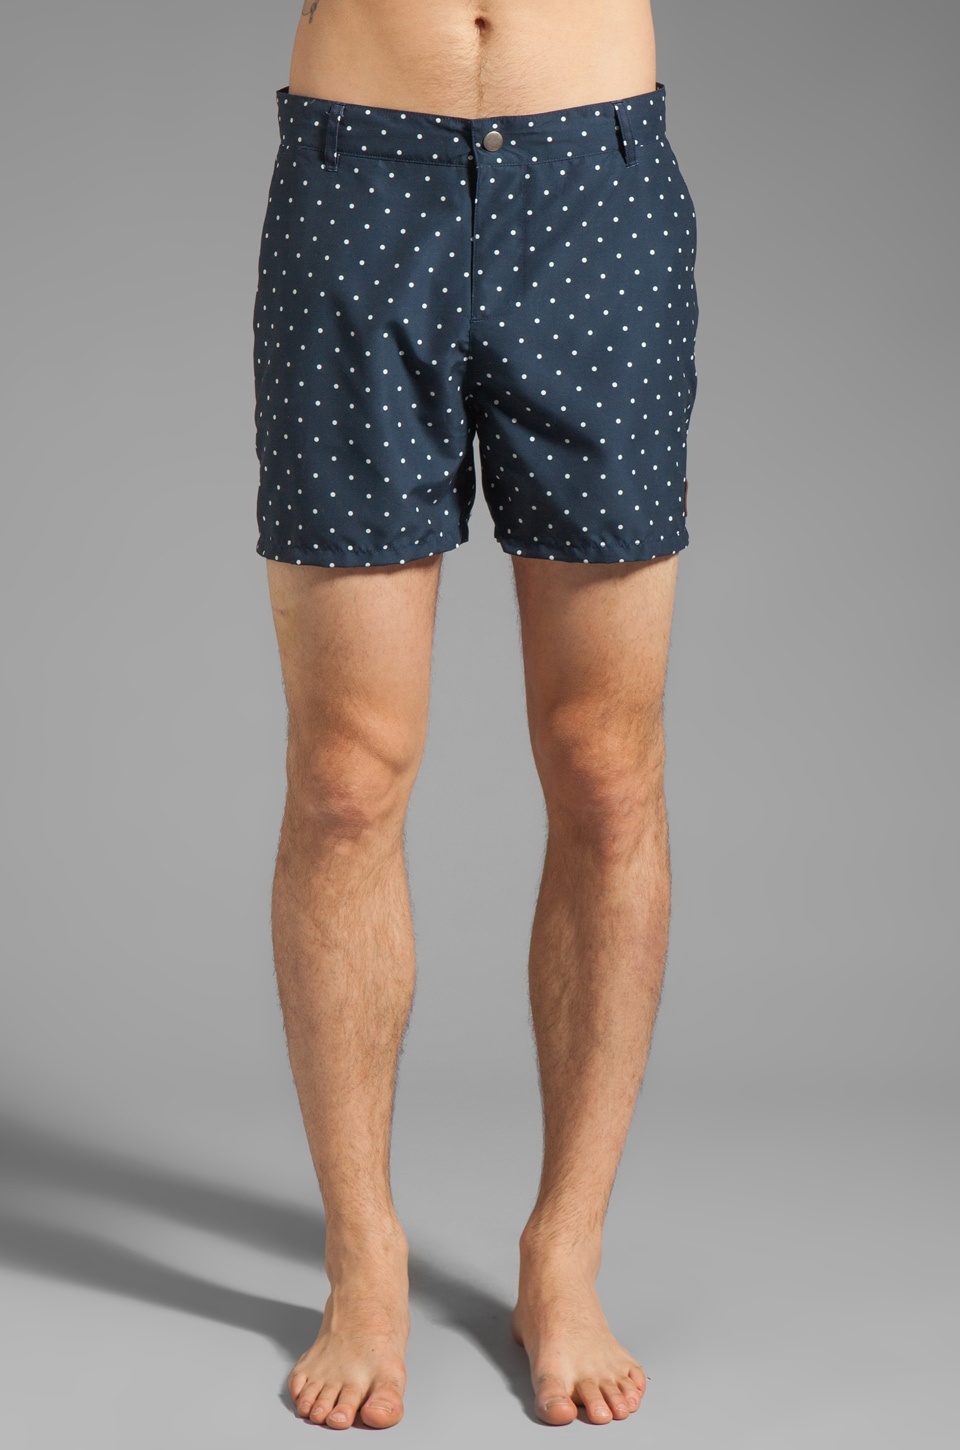 Obey Lido Island Boardshort in Navy